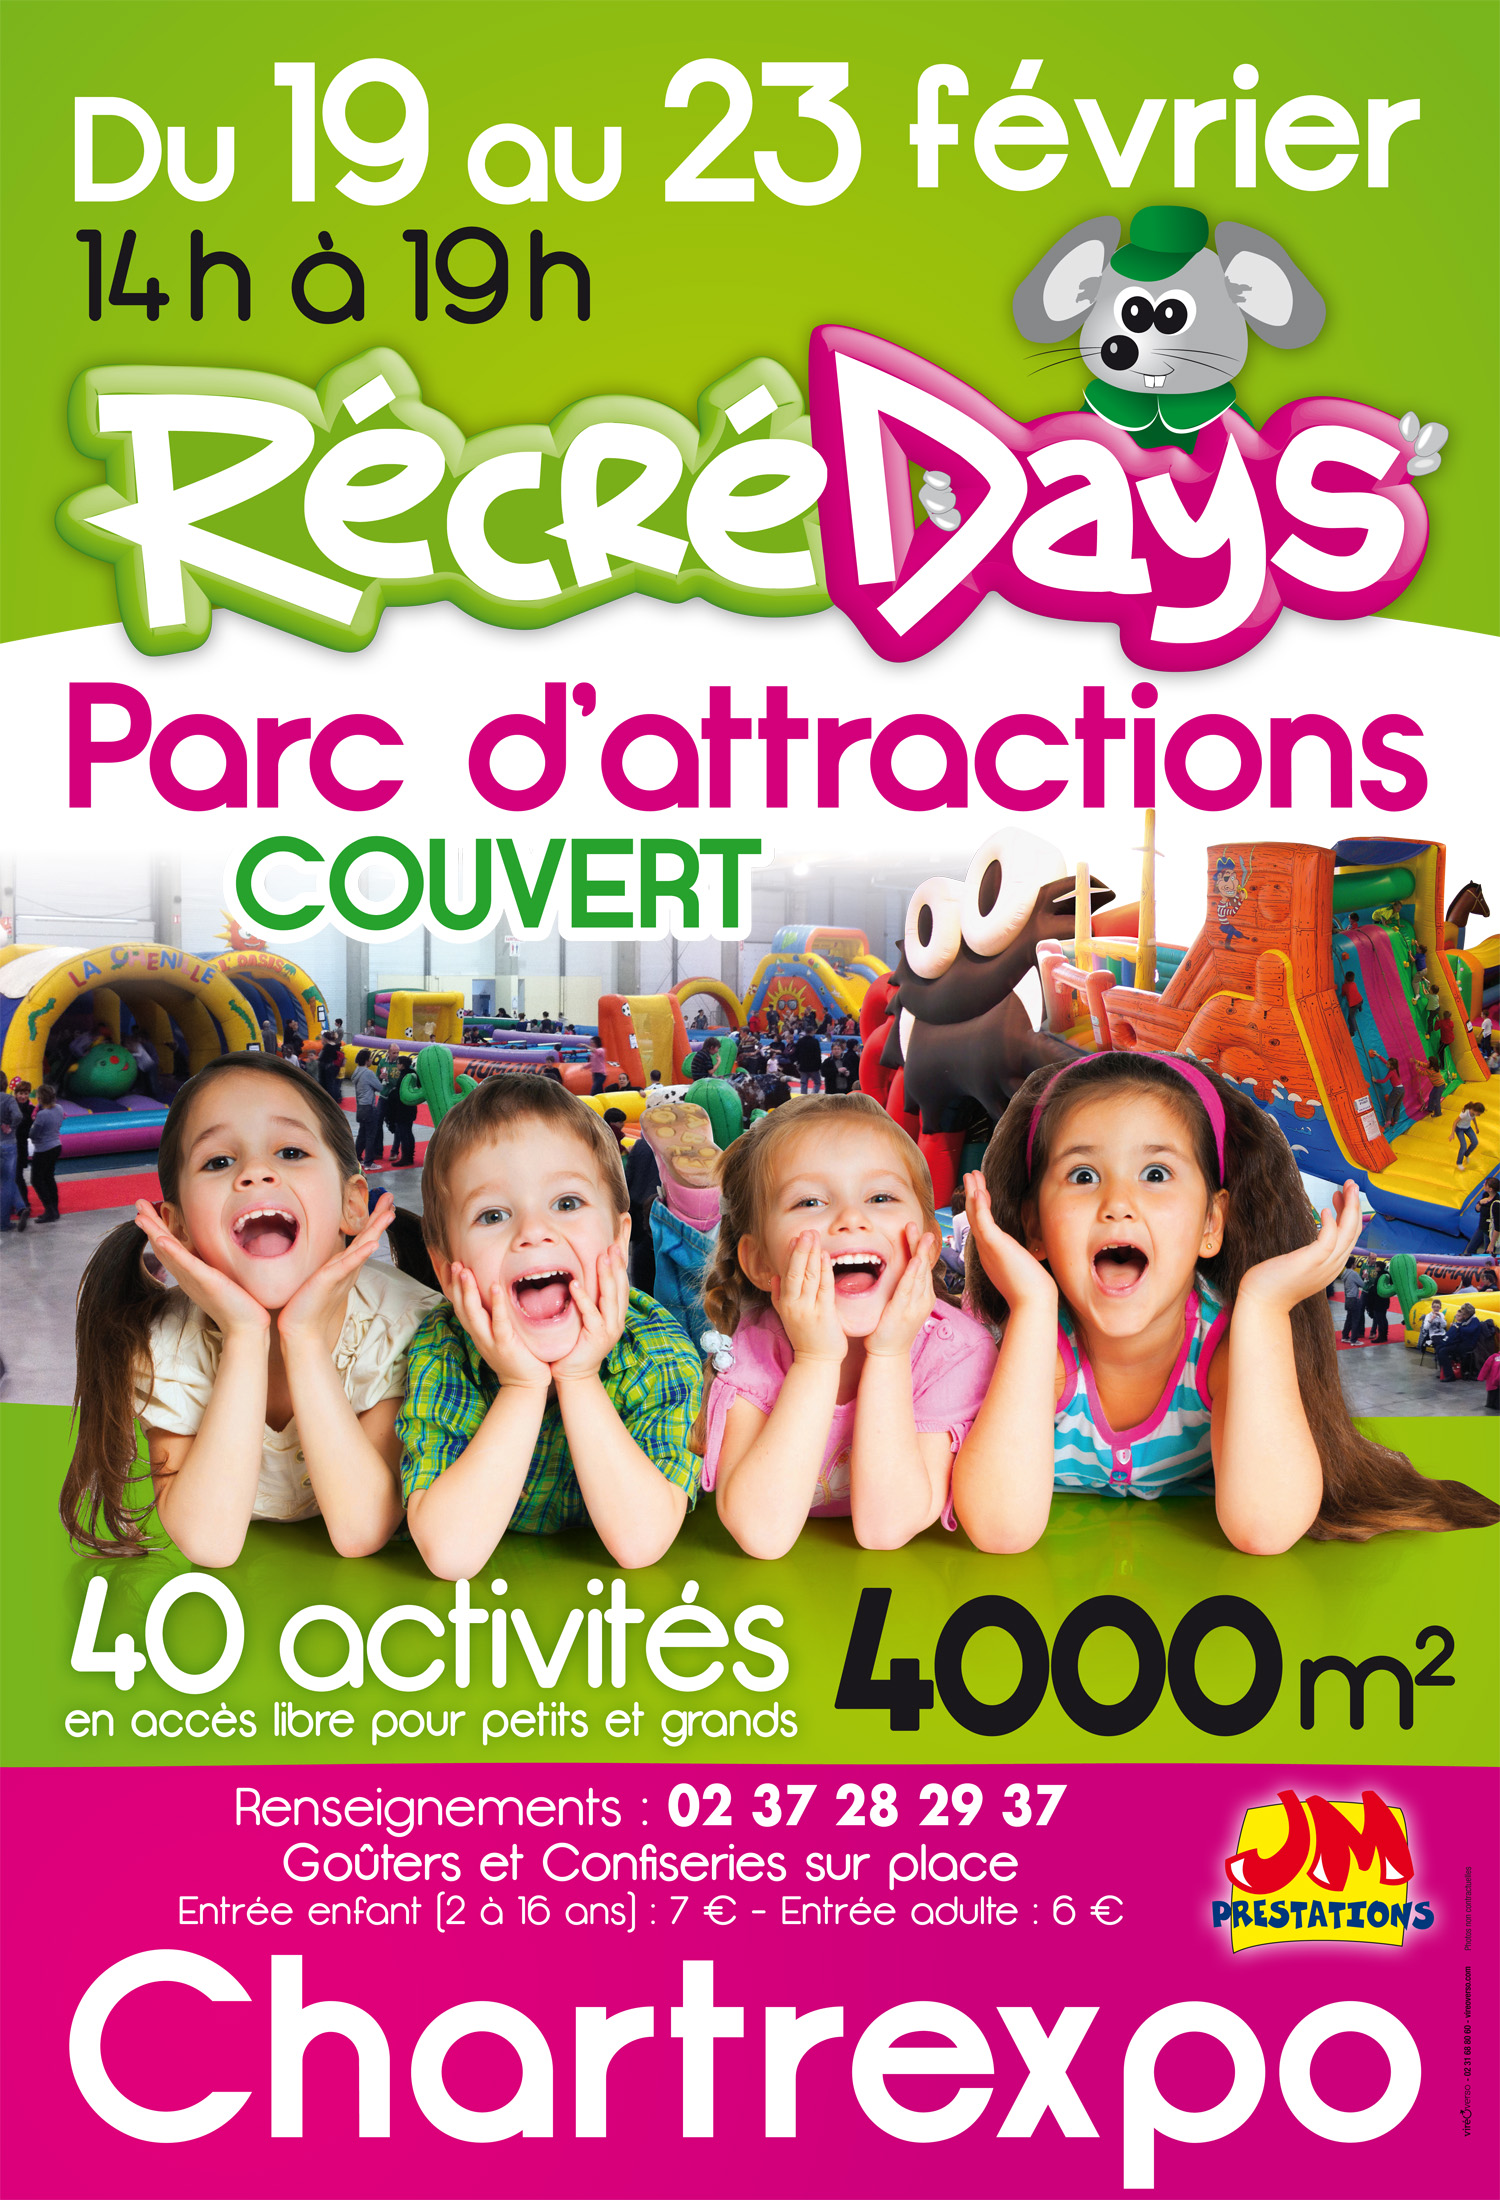 affiche-chartres-11-12-2012.jpg